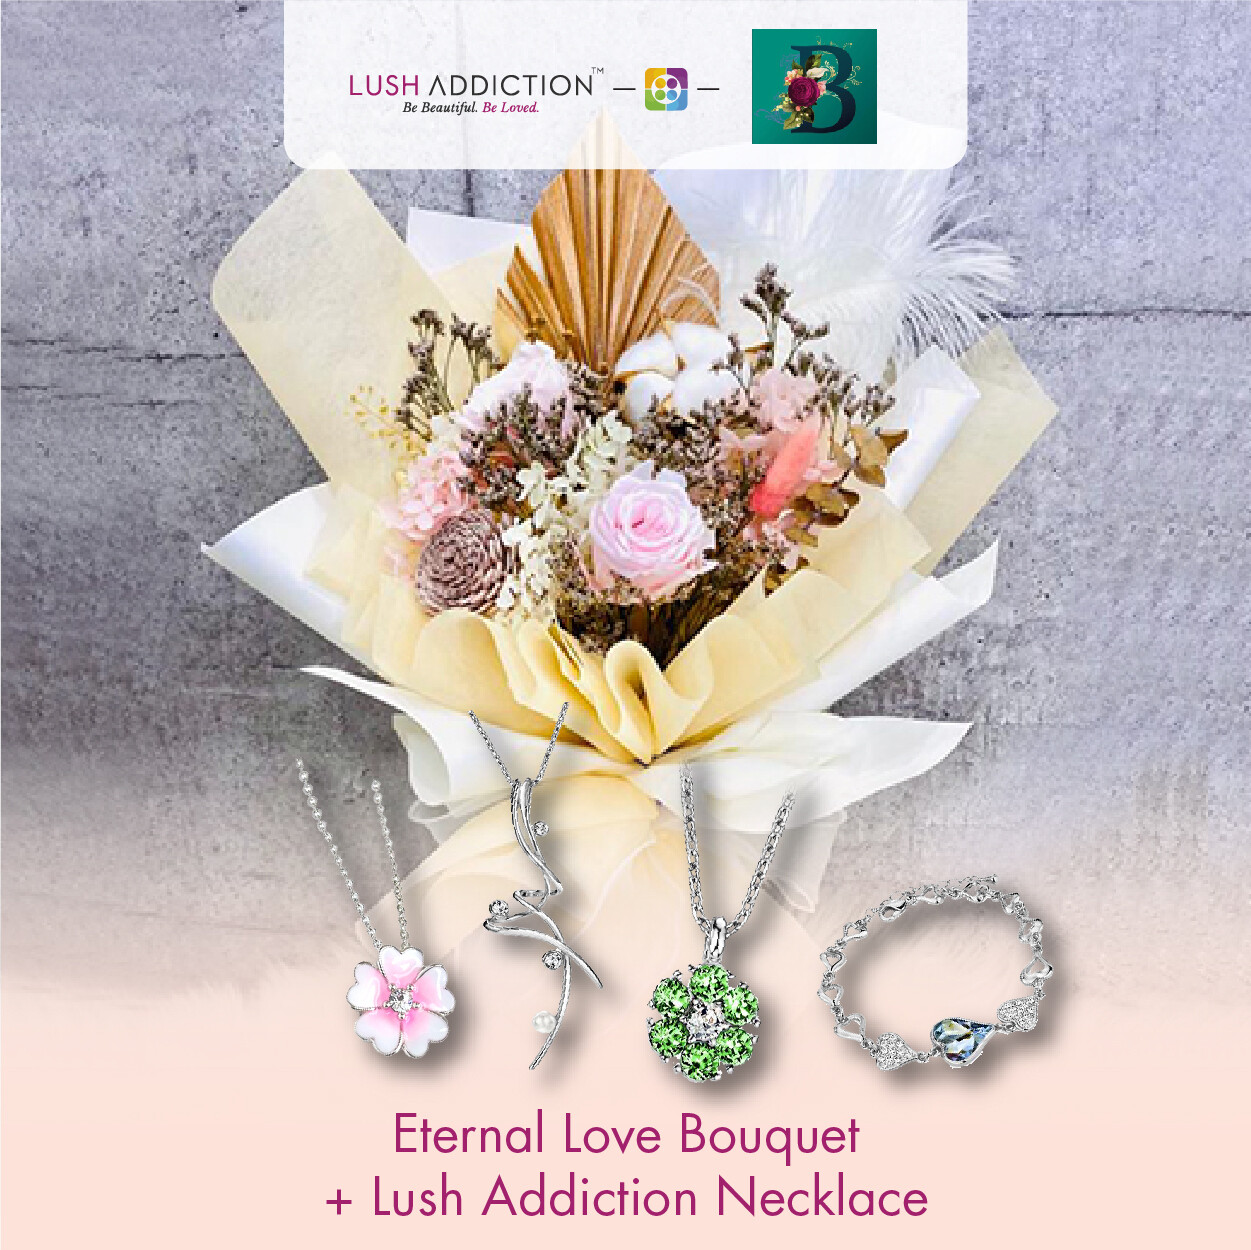 Eternal Love Bouquet + Lush Addiction Necklace (By: The Bliss Florist from Melaka)